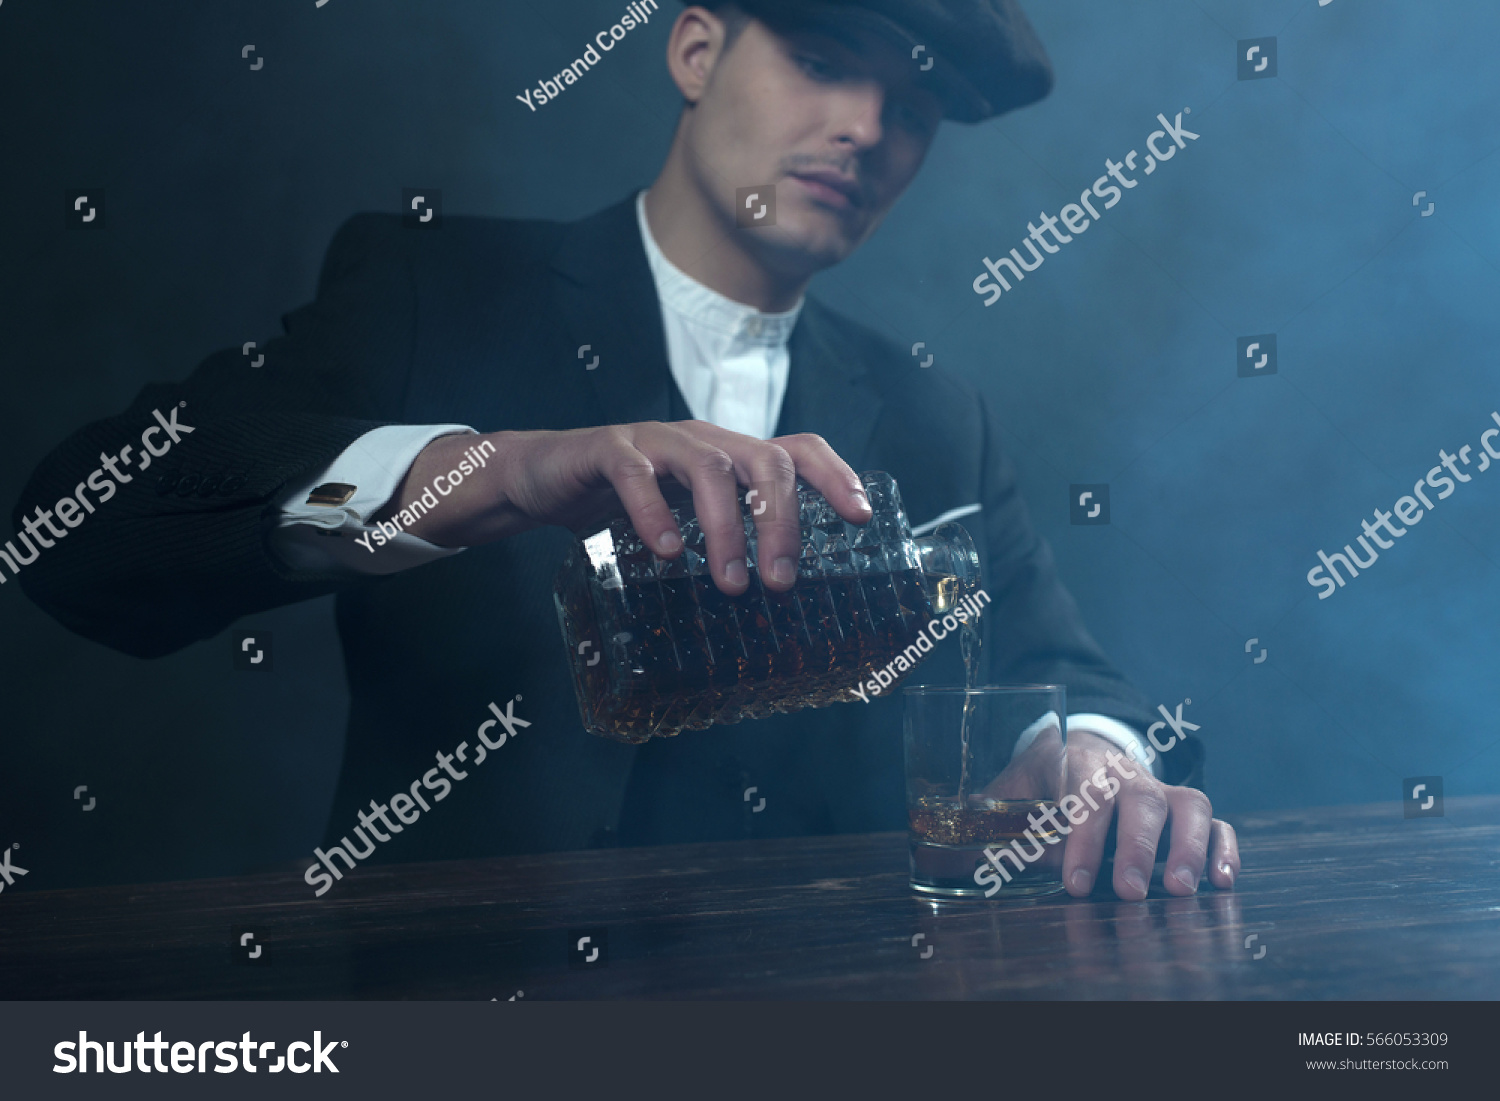 Retro 1920s english gangster with flat cap pouring whiskey. Peaky blinders  style. 22e4db5d375